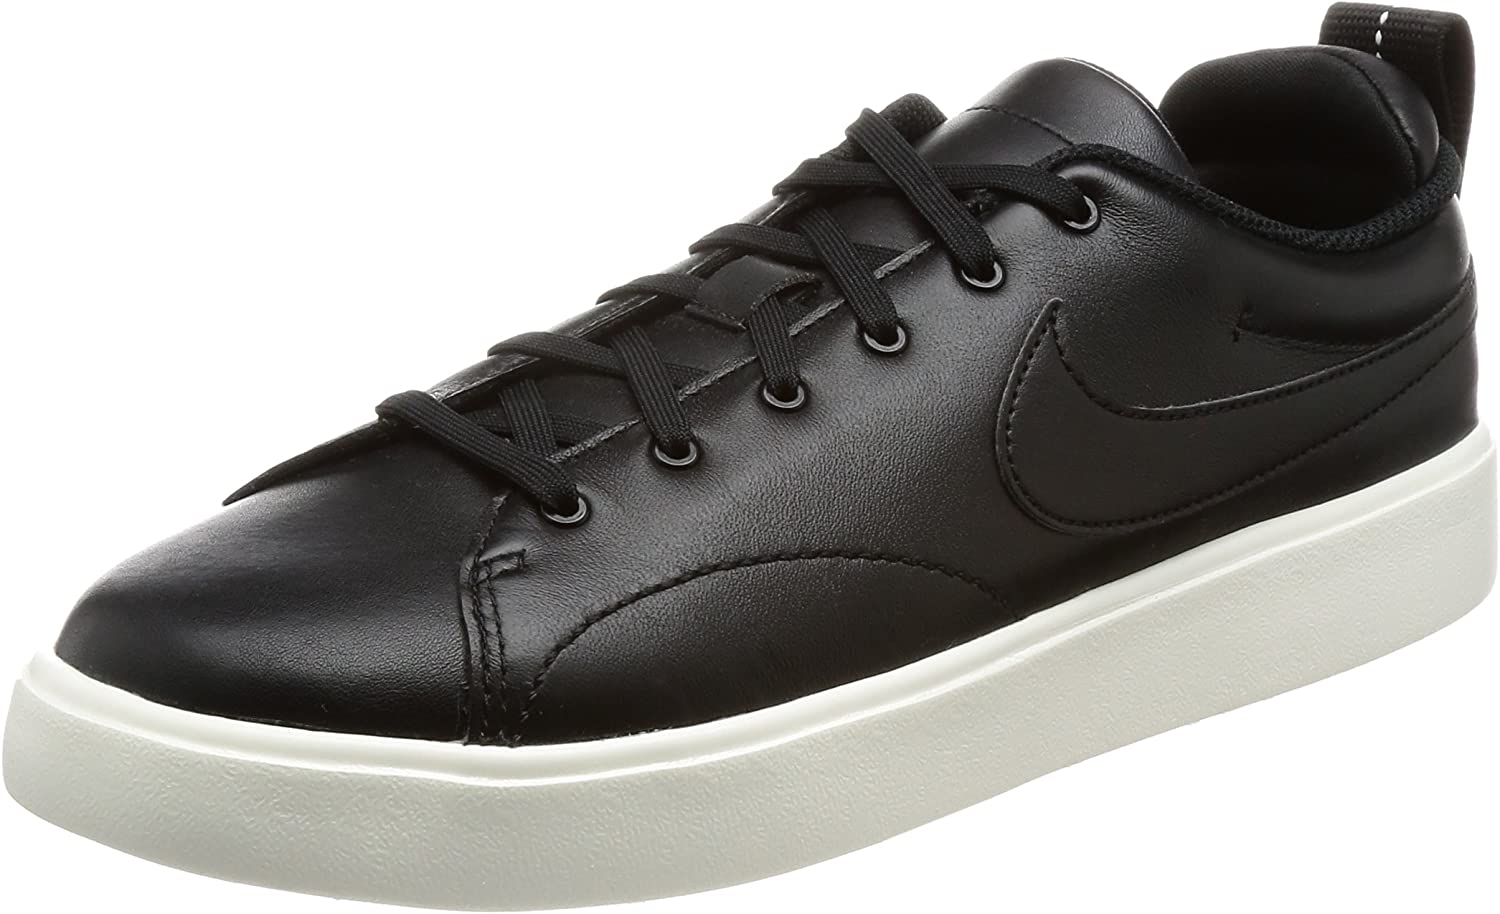 Nike Men's Challenge the lowest price of Japan ☆ Course free Golf Shoes Classic